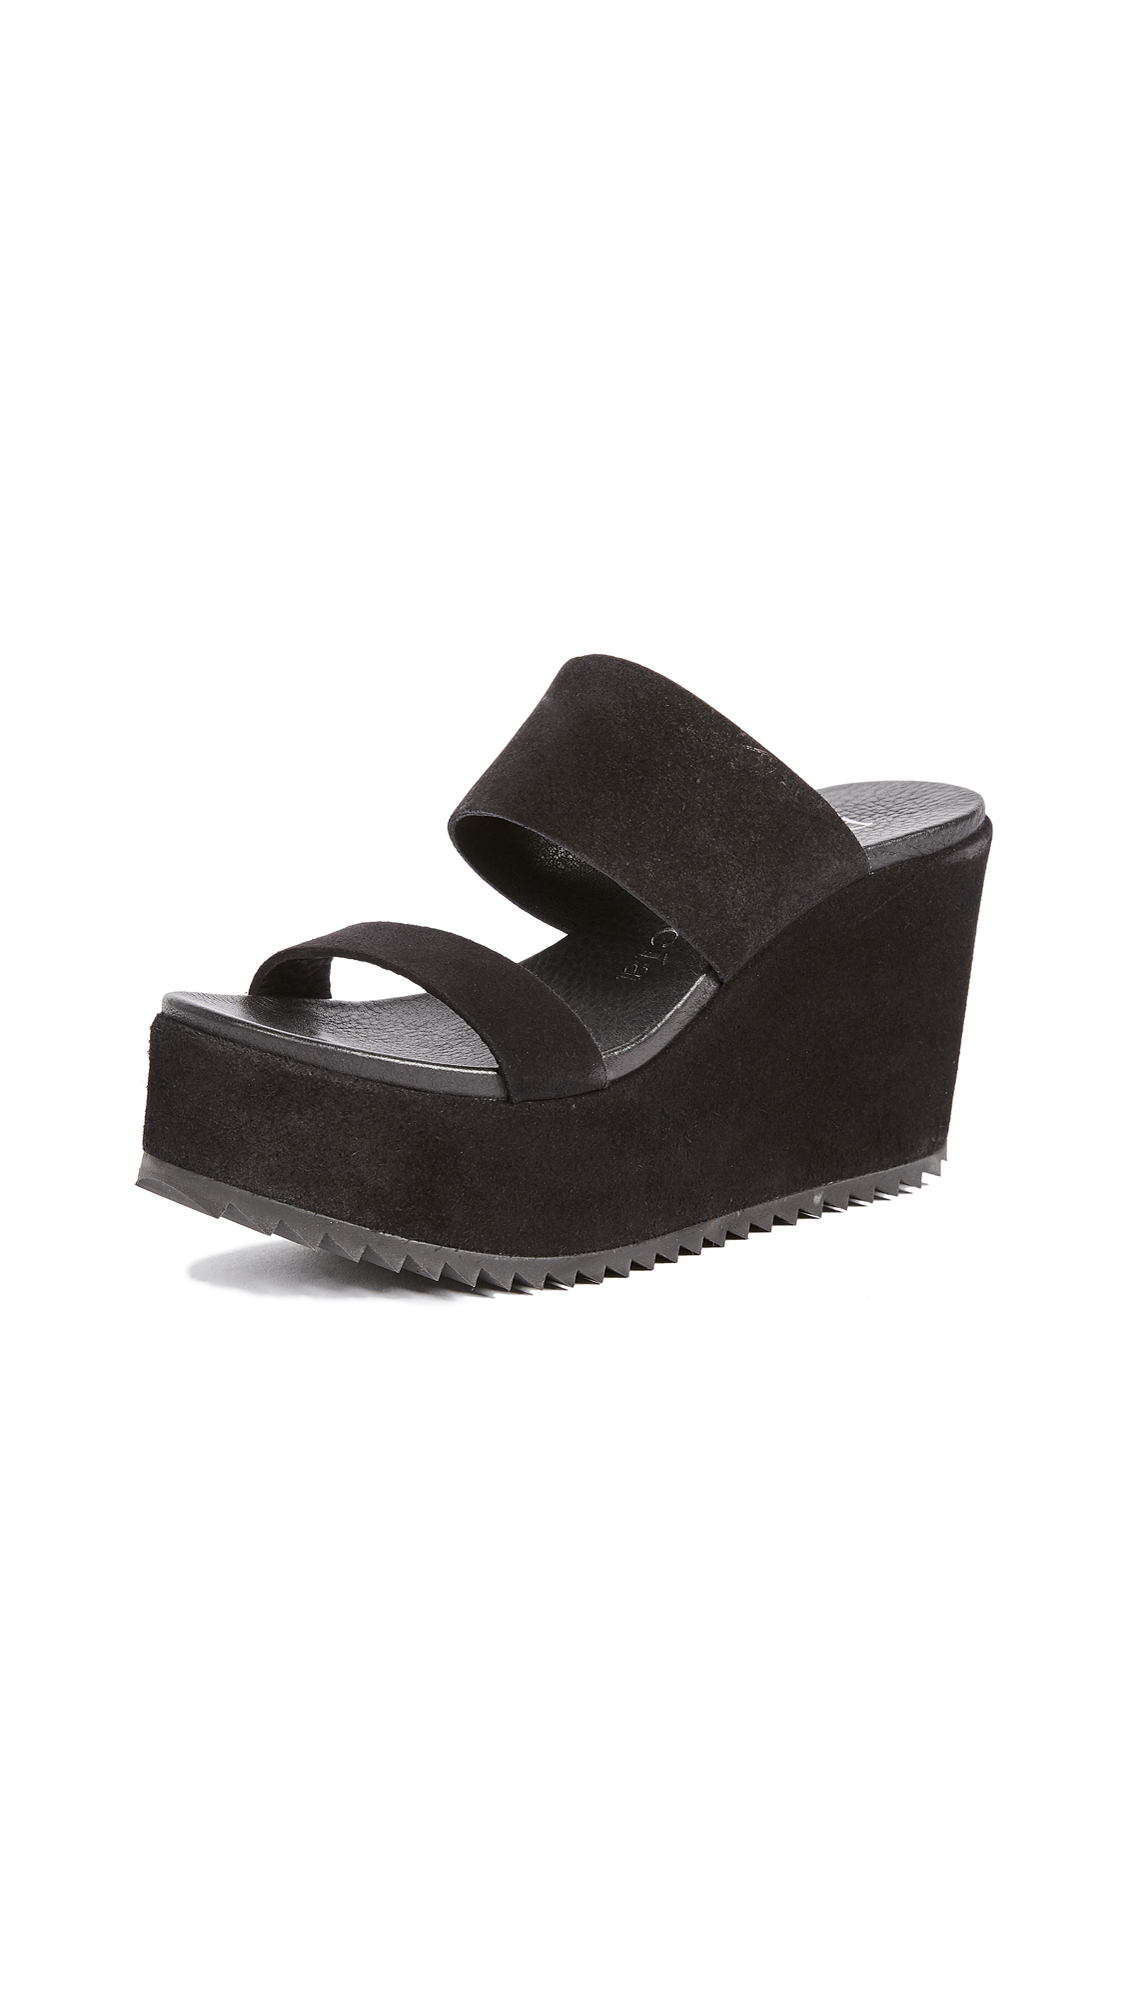 Pedro Garcia Dahl Wedge Slides - Black